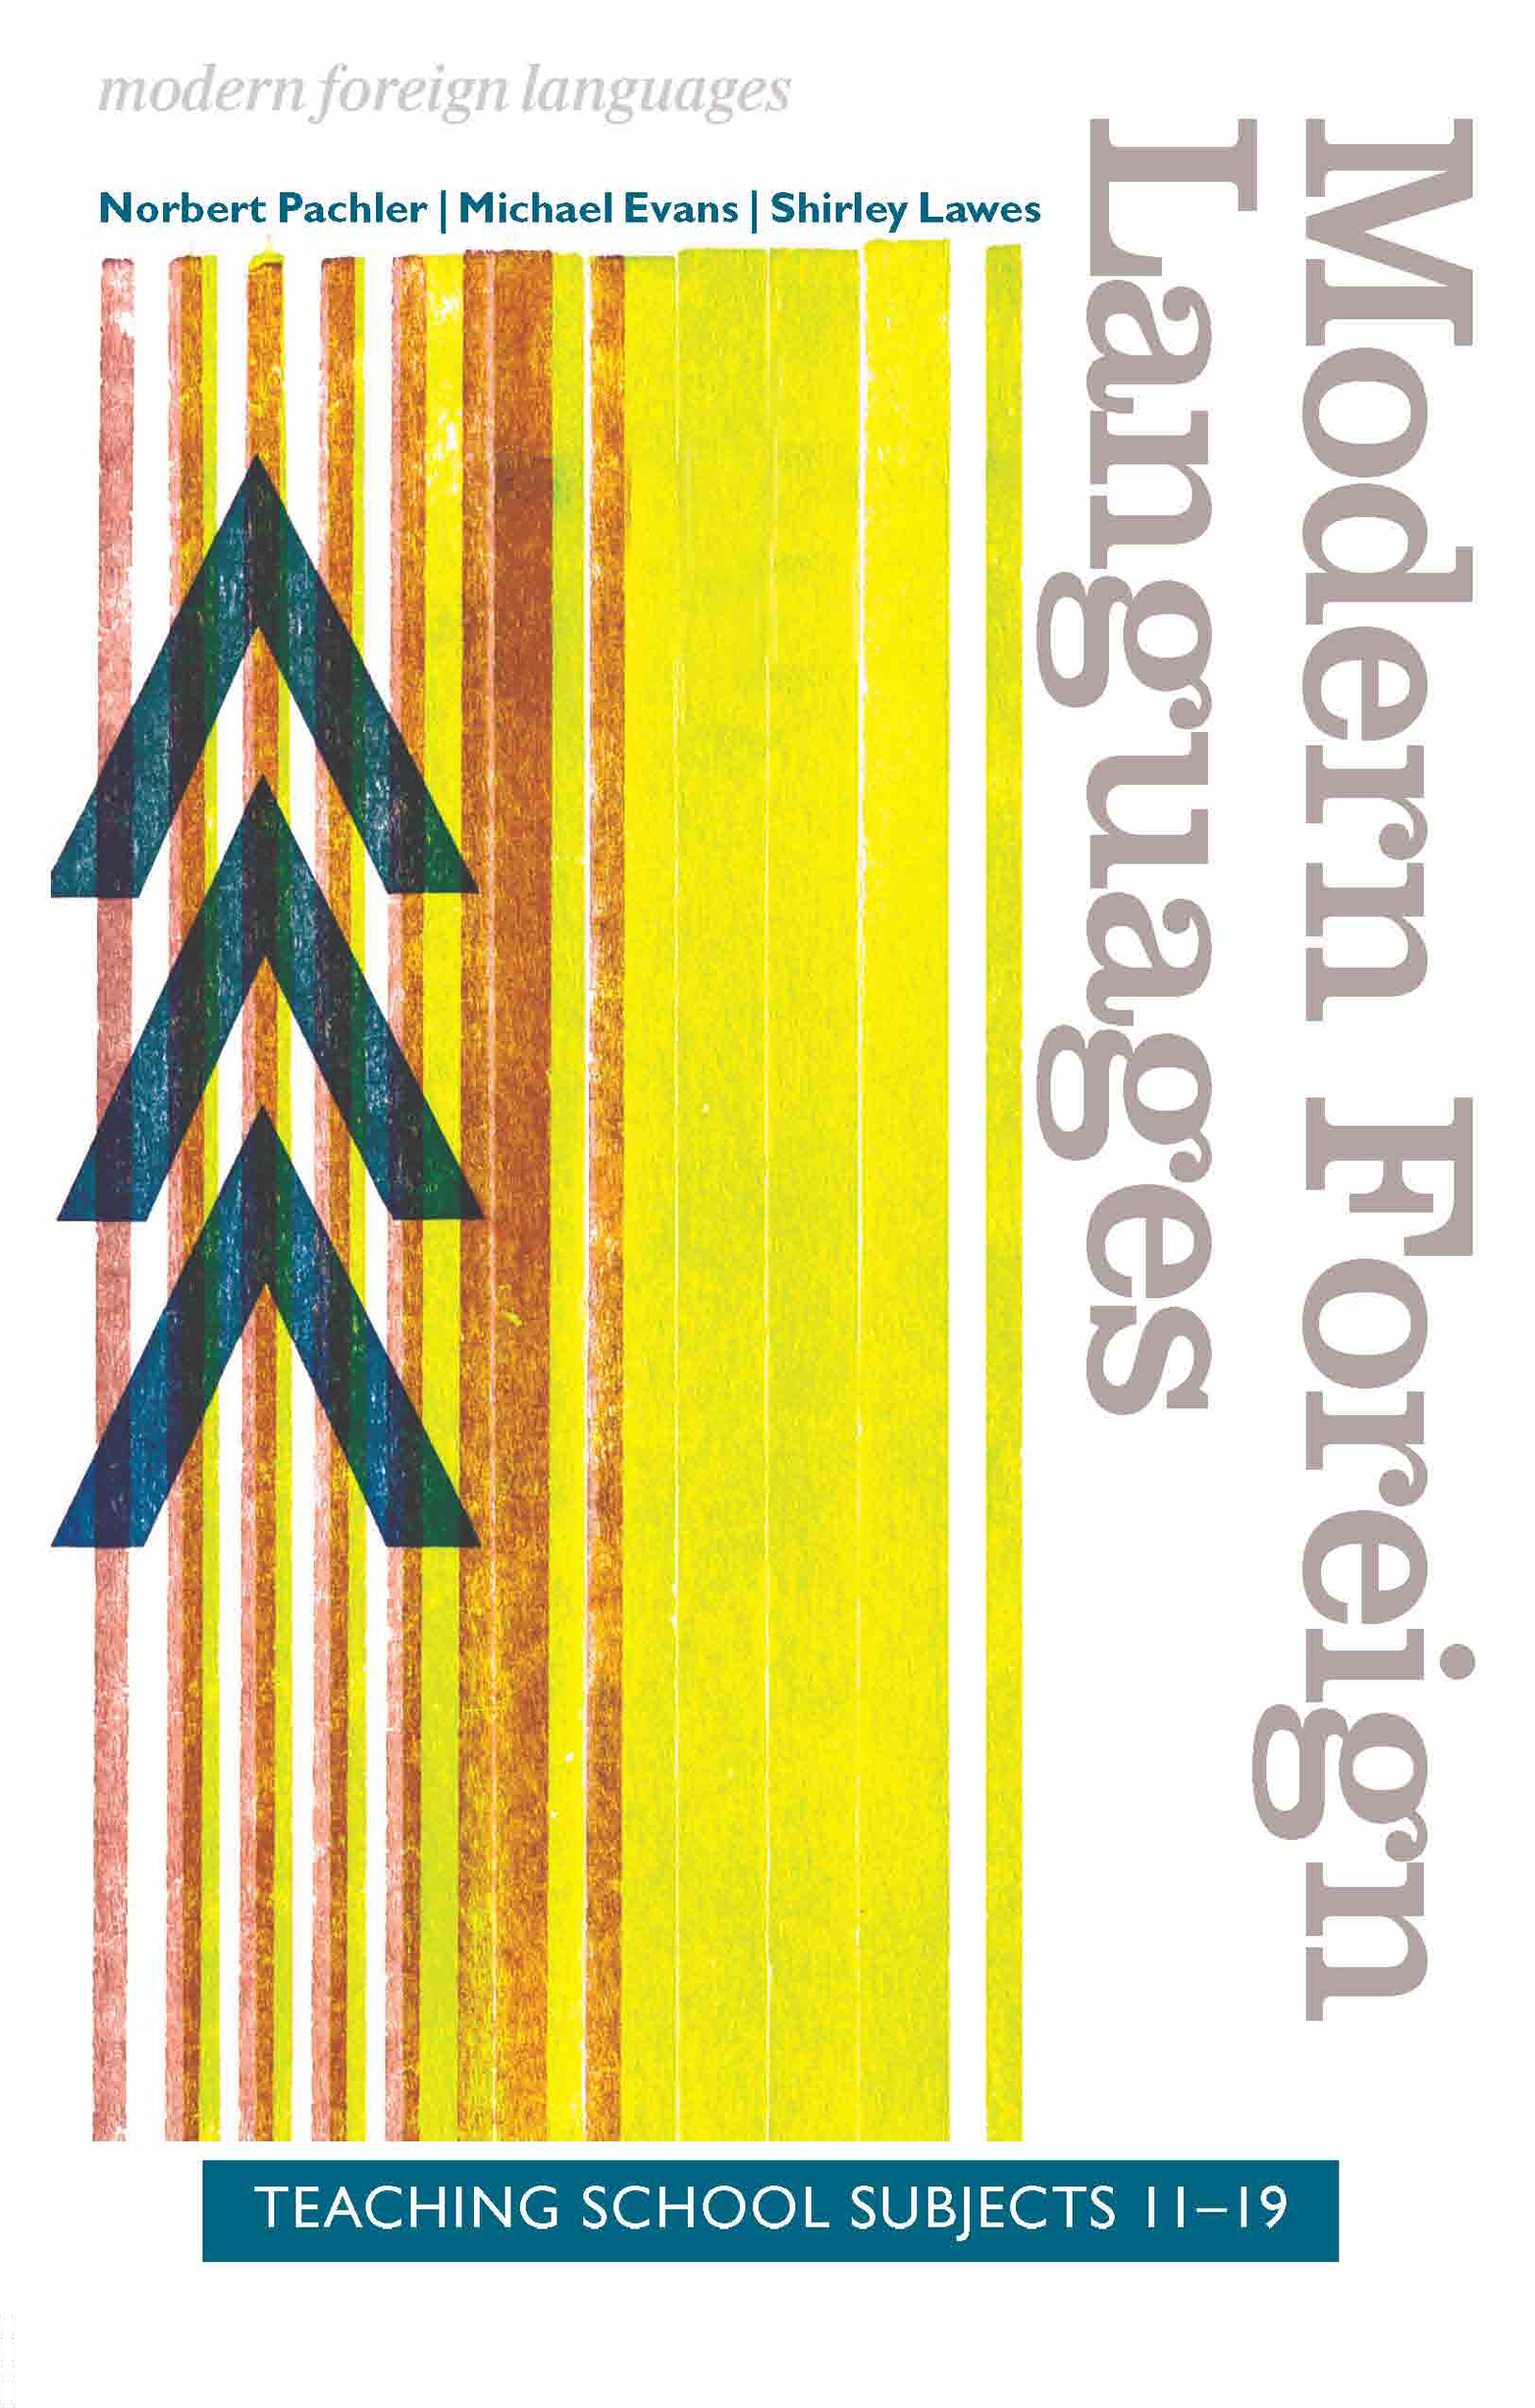 Modern Foreign Languages: Teaching School Subjects 11-19 (Paperback) book cover